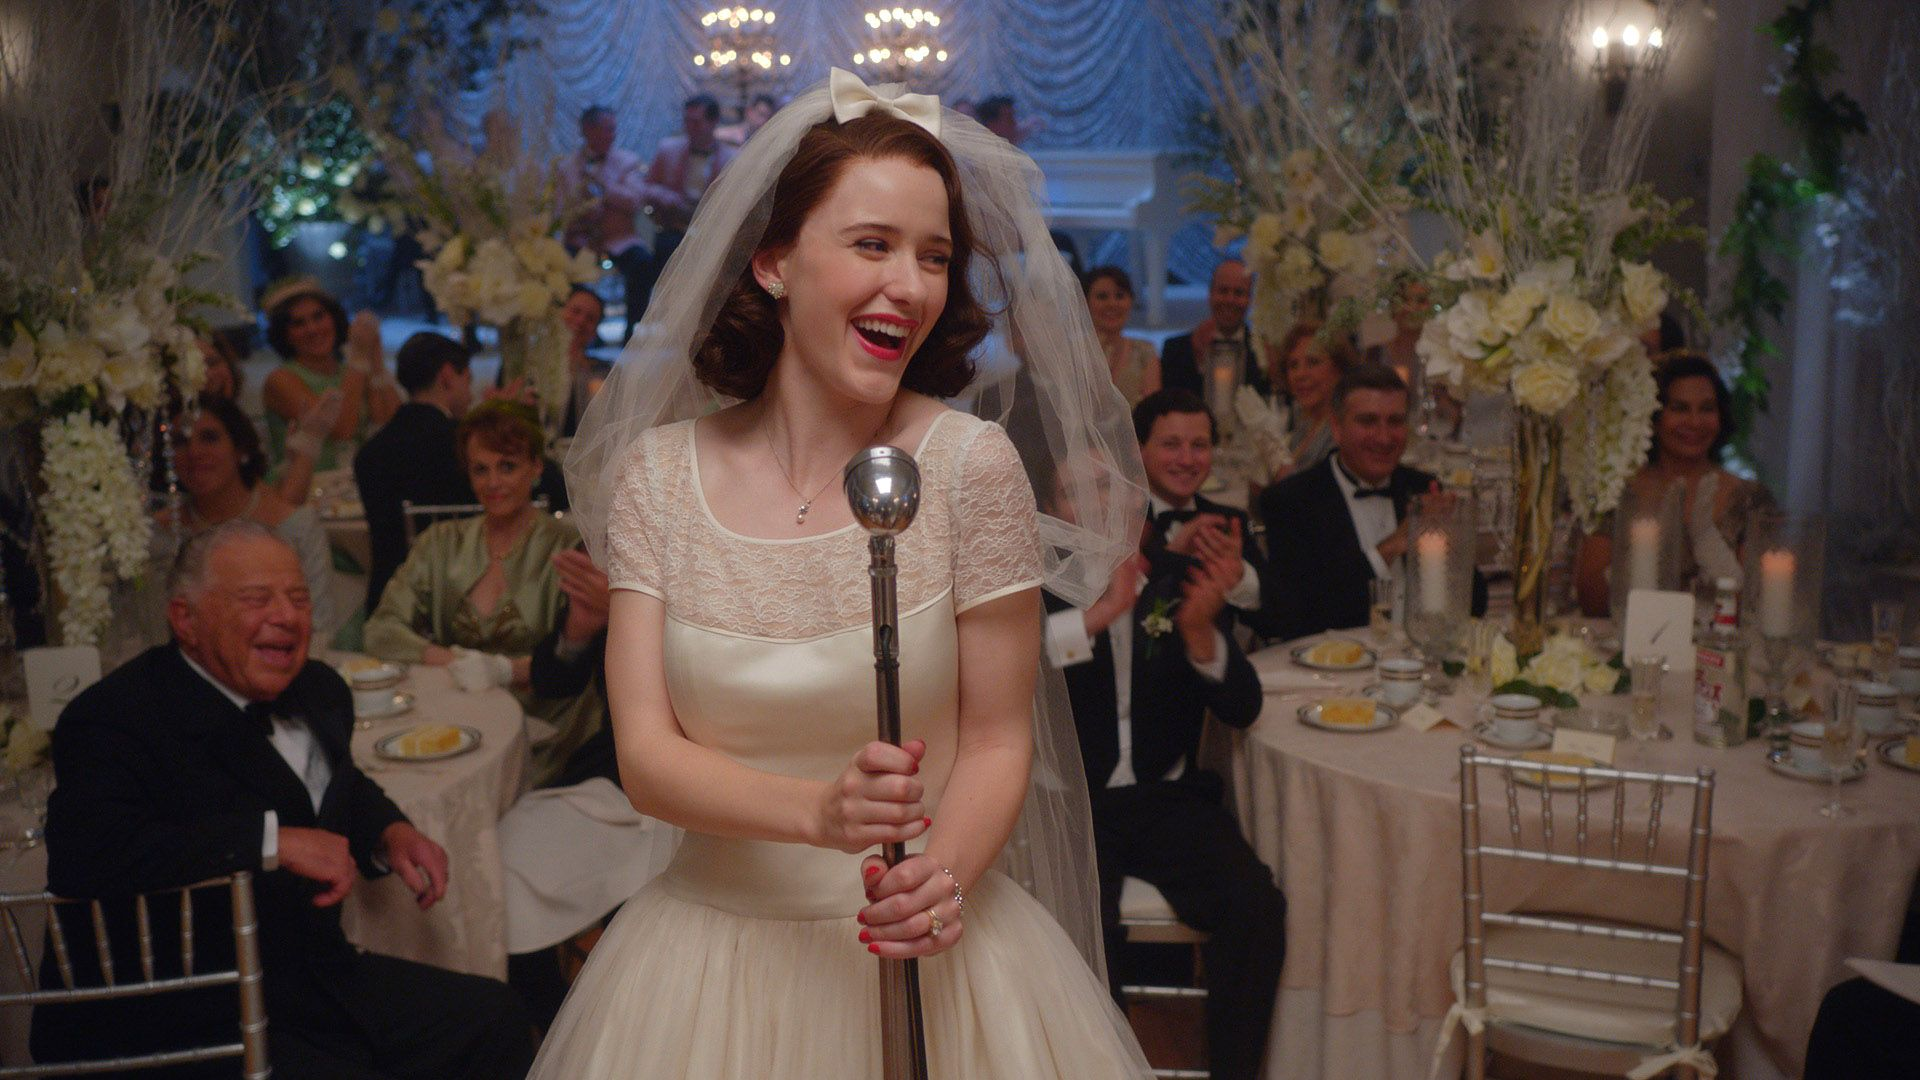 the-marvelous-mrs-maisel-serie-amazon-emmys-1537251789